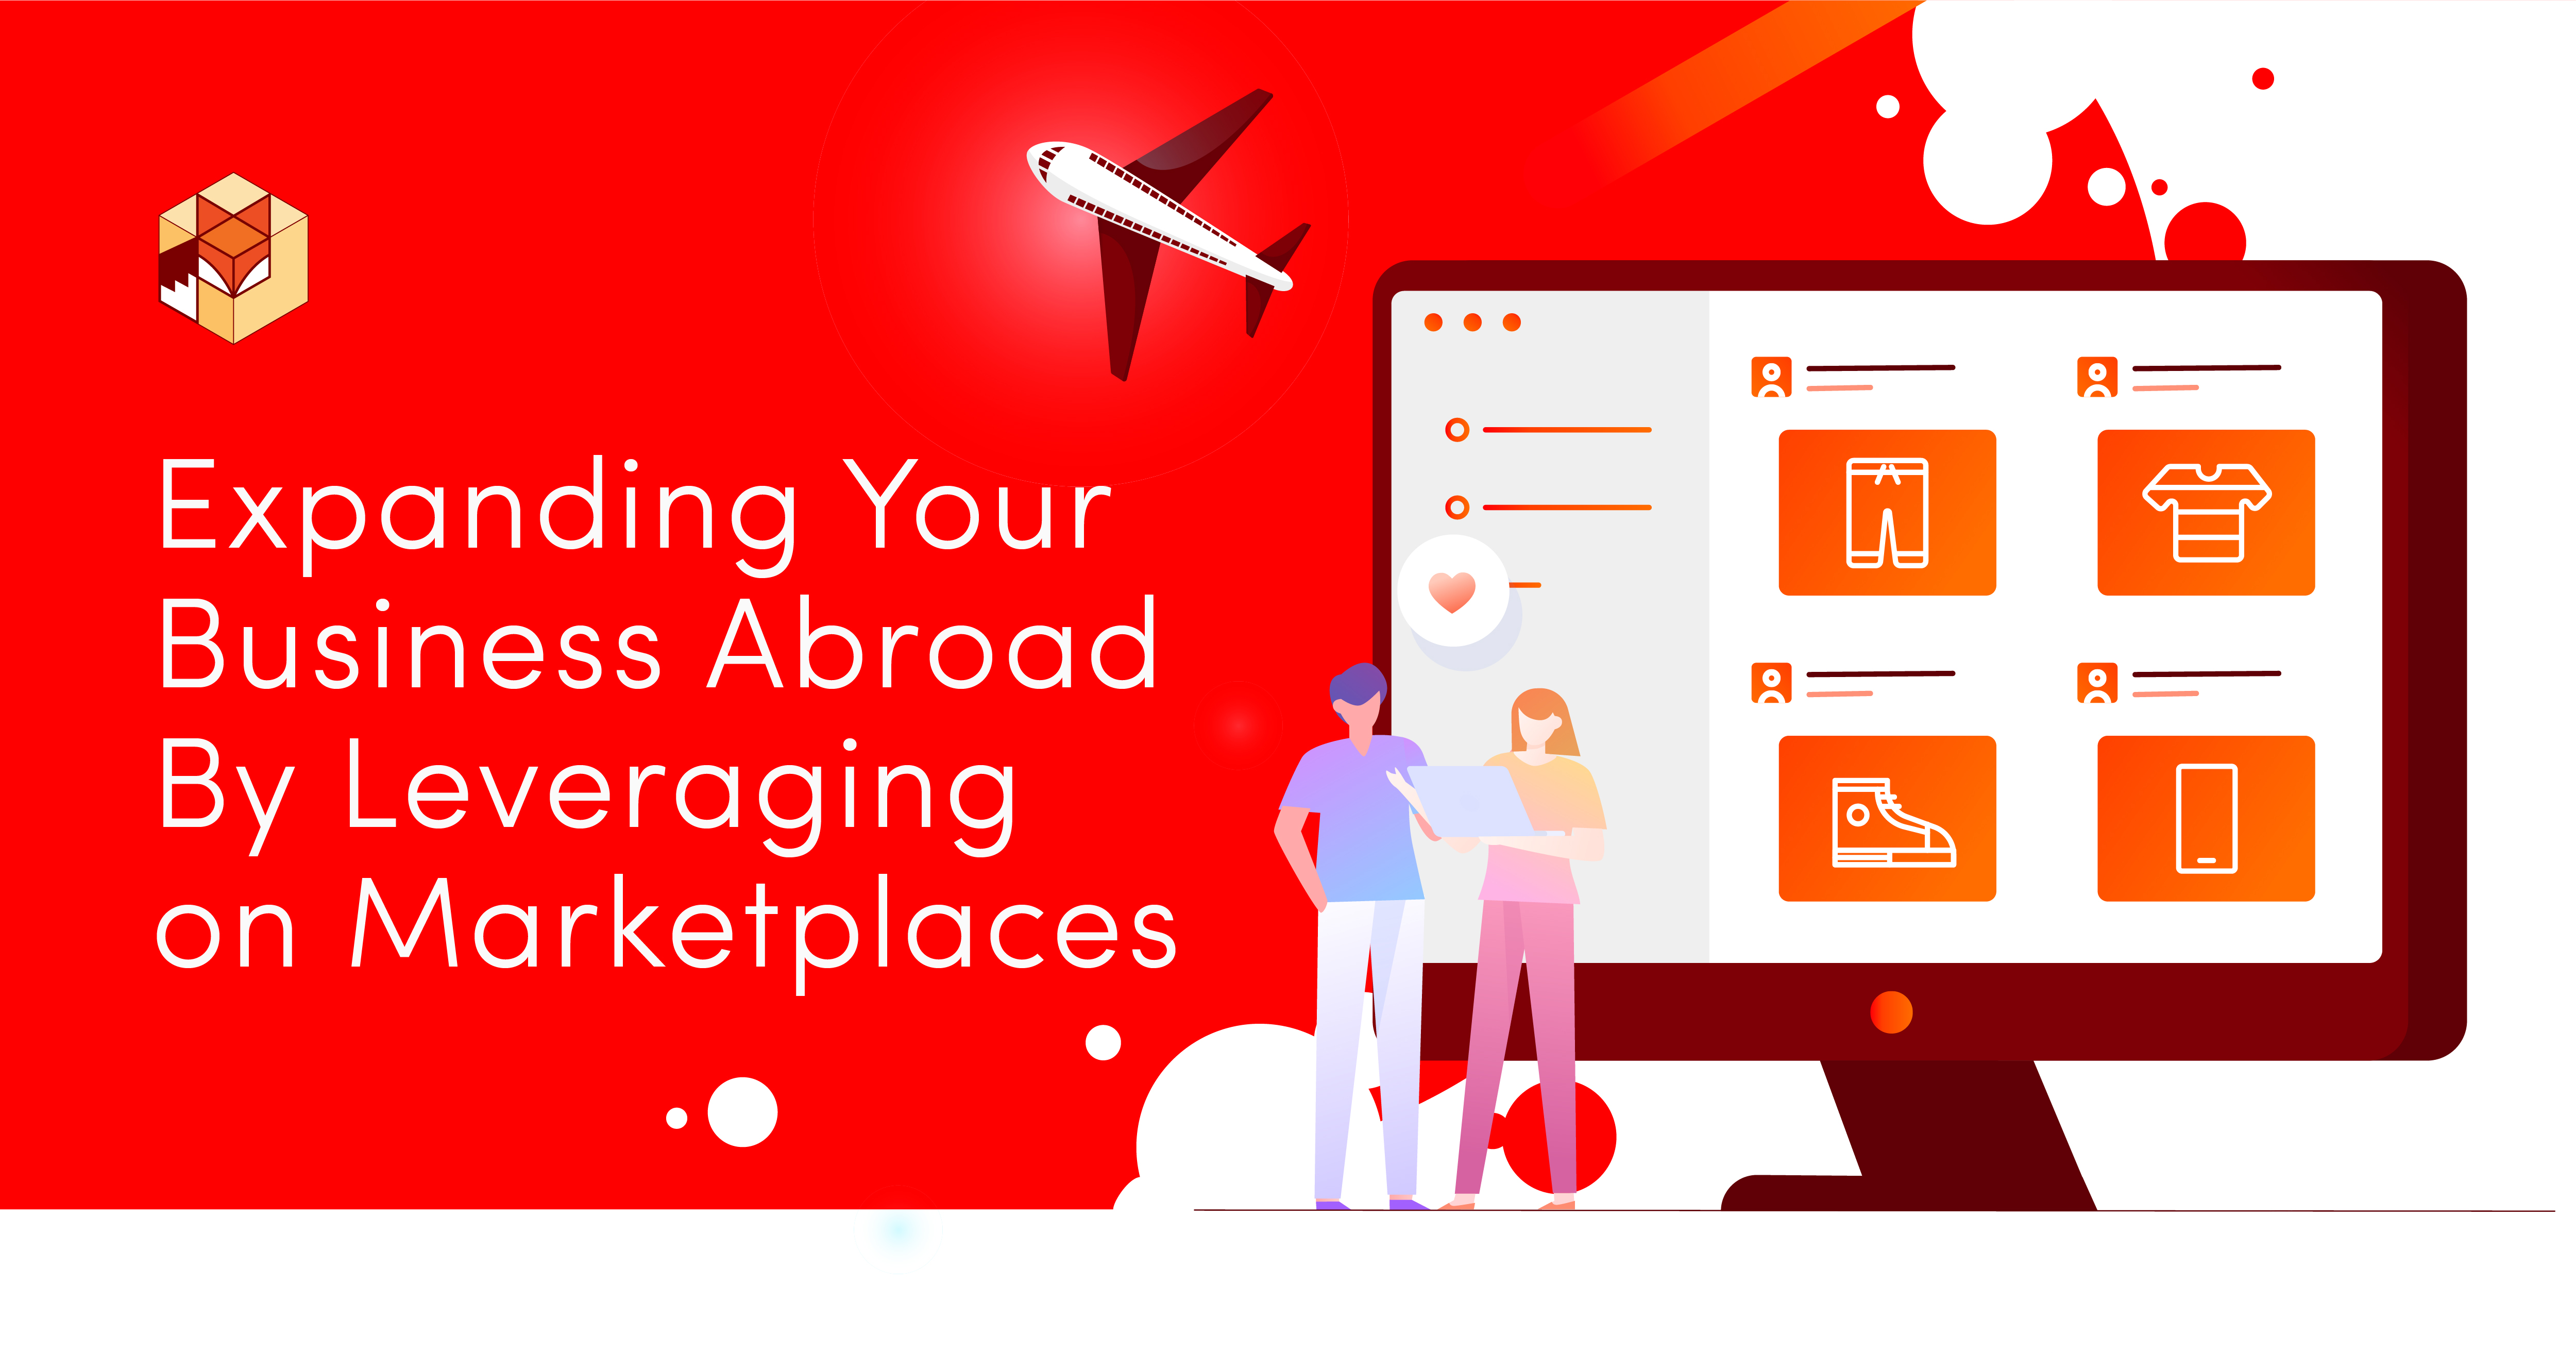 Expanding Your Business Abroad by Leveraging on Marketplaces